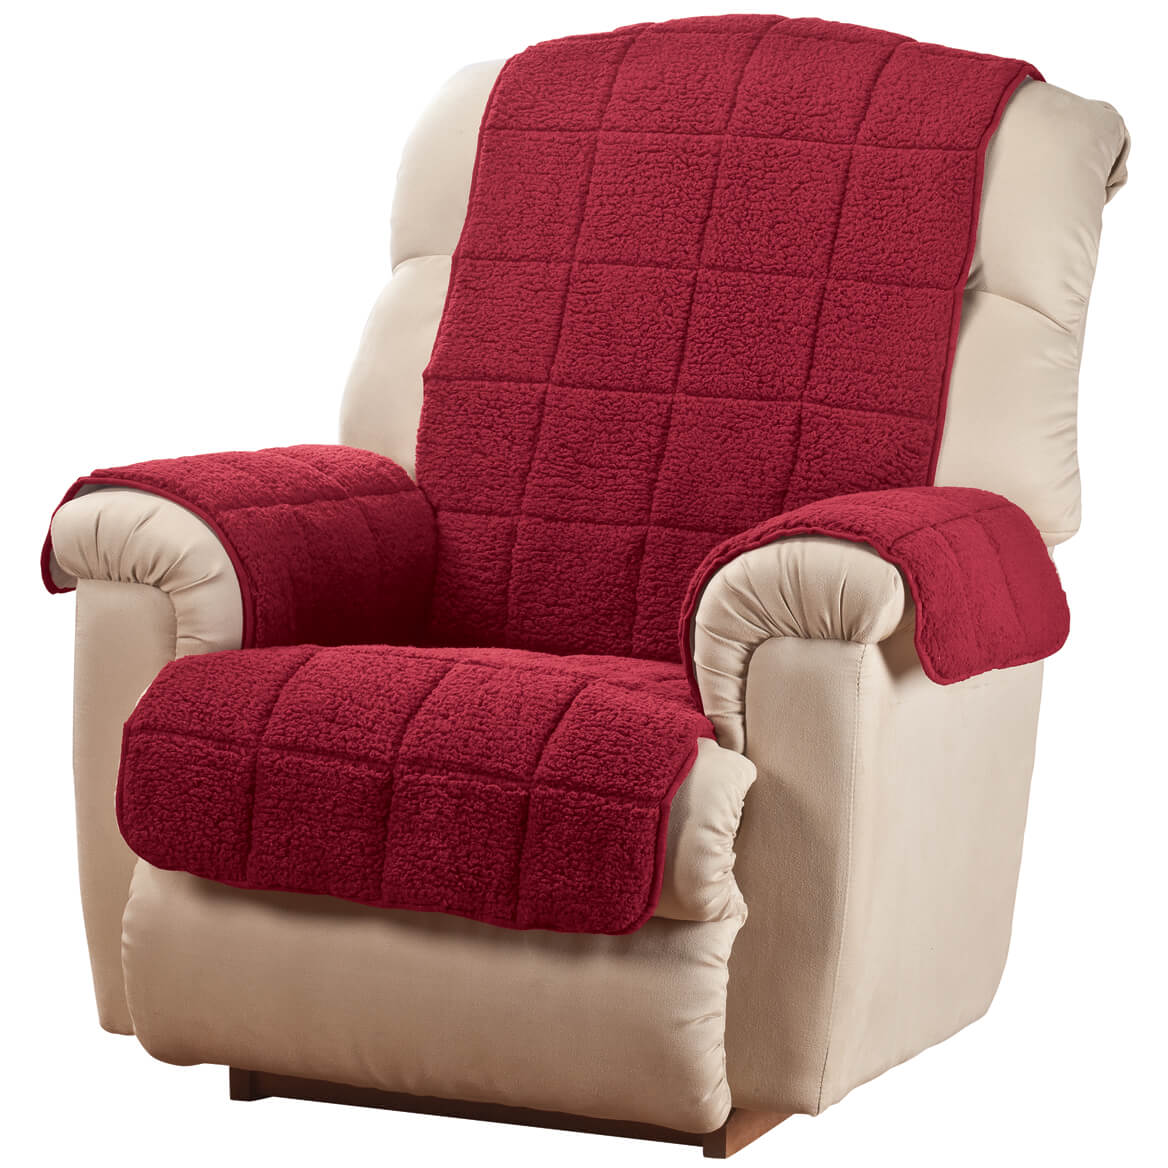 Waterproof Quilted Sherpa Recliner Cover by OakRidgeTM